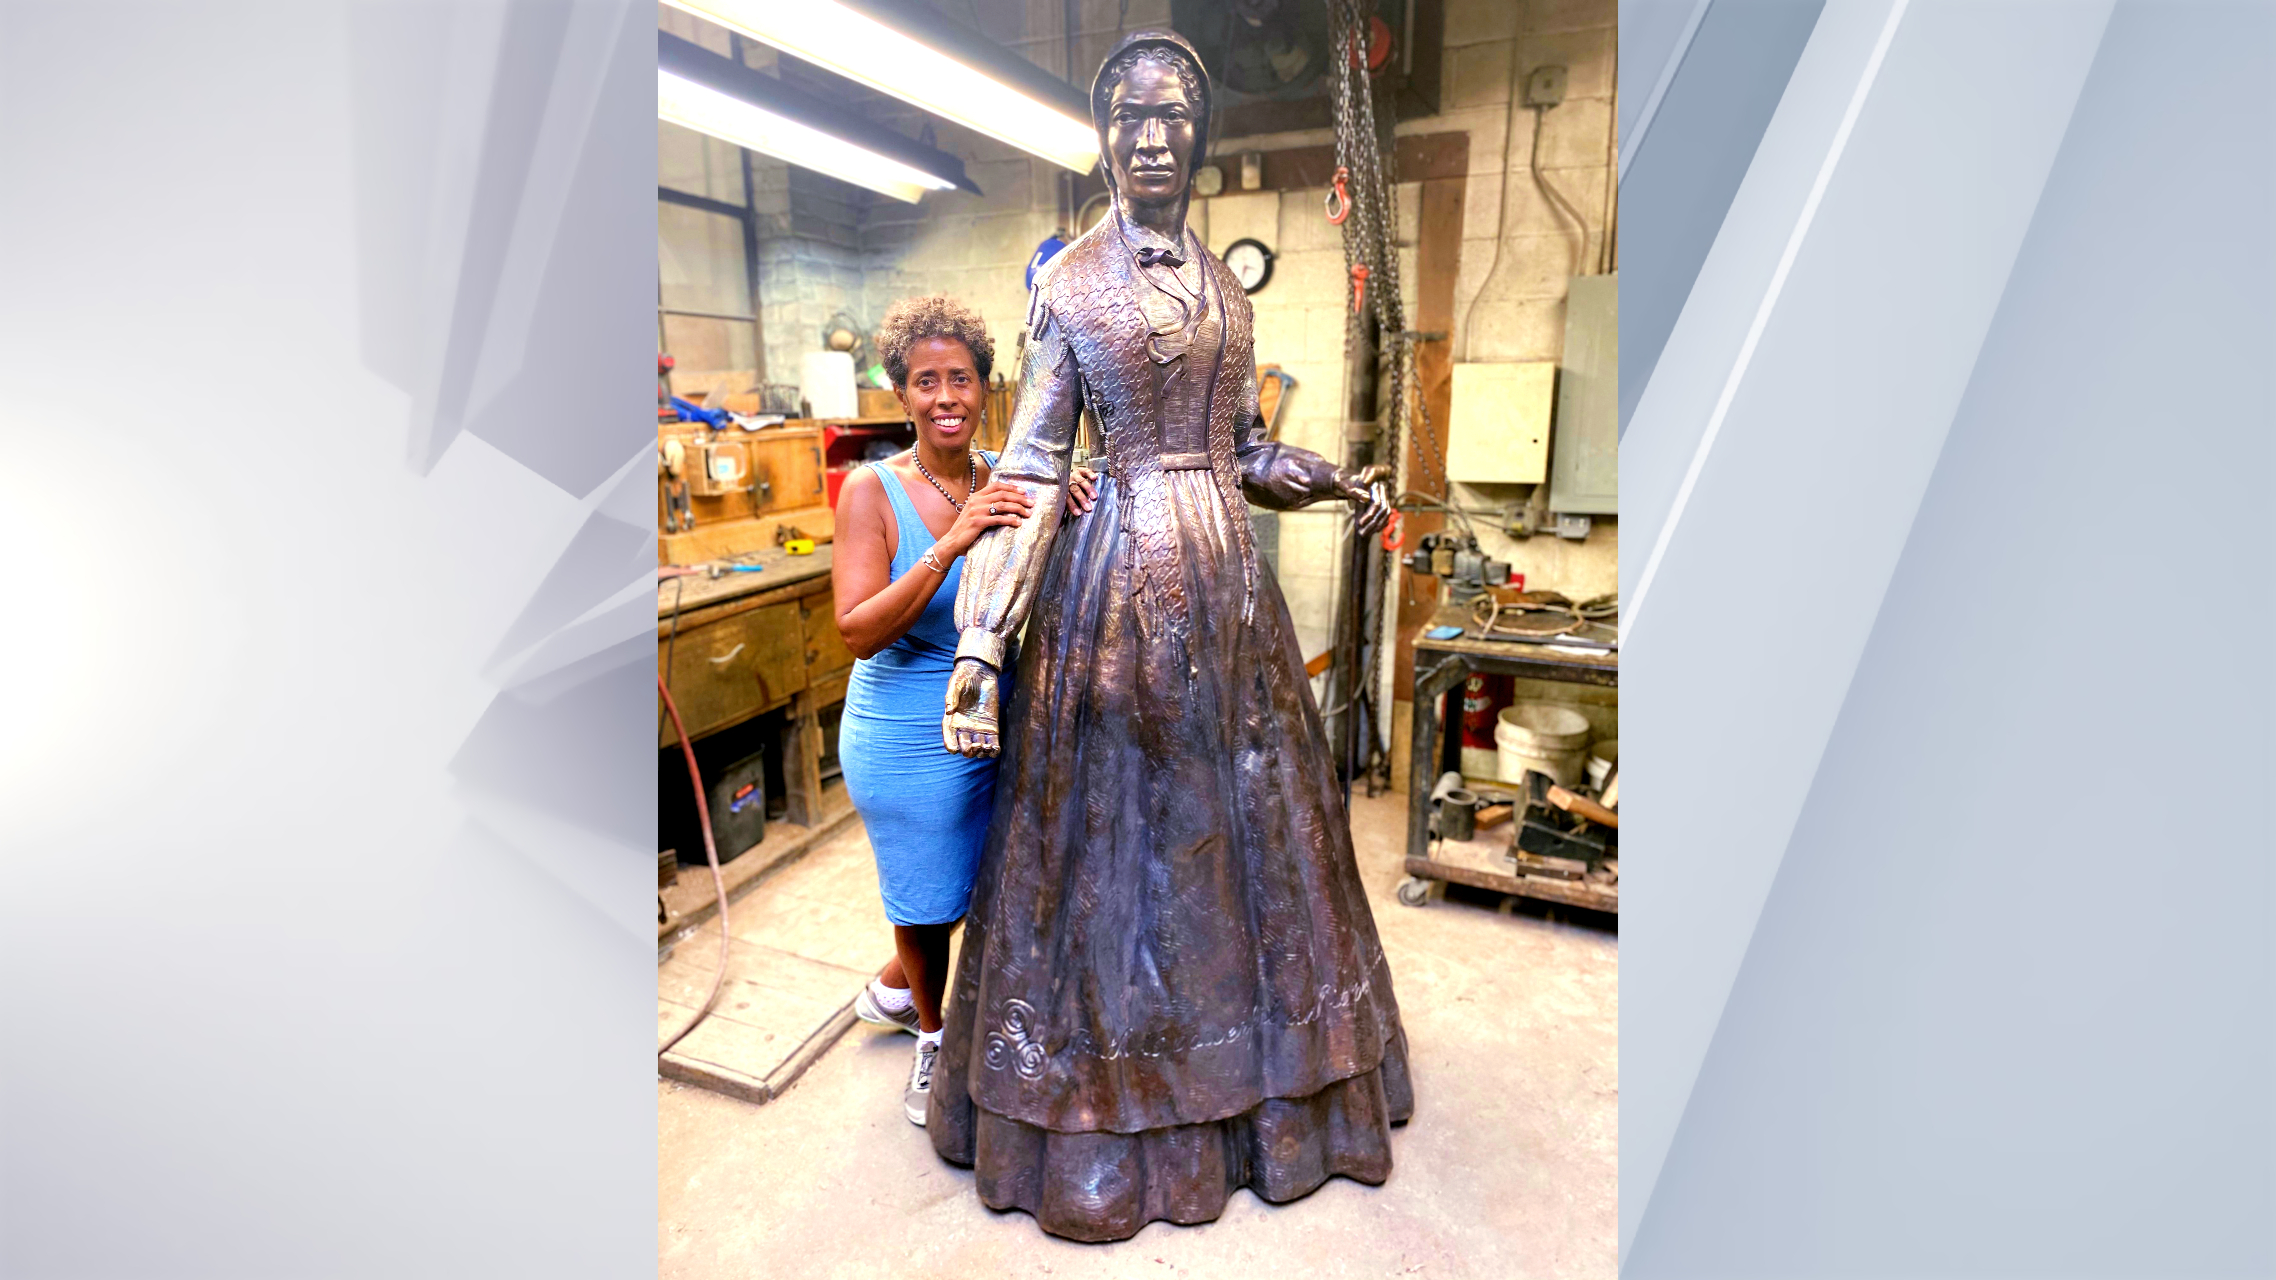 Sculptor Vinnie Bagwell with 7-foot-tall monument to Sojourner Truth